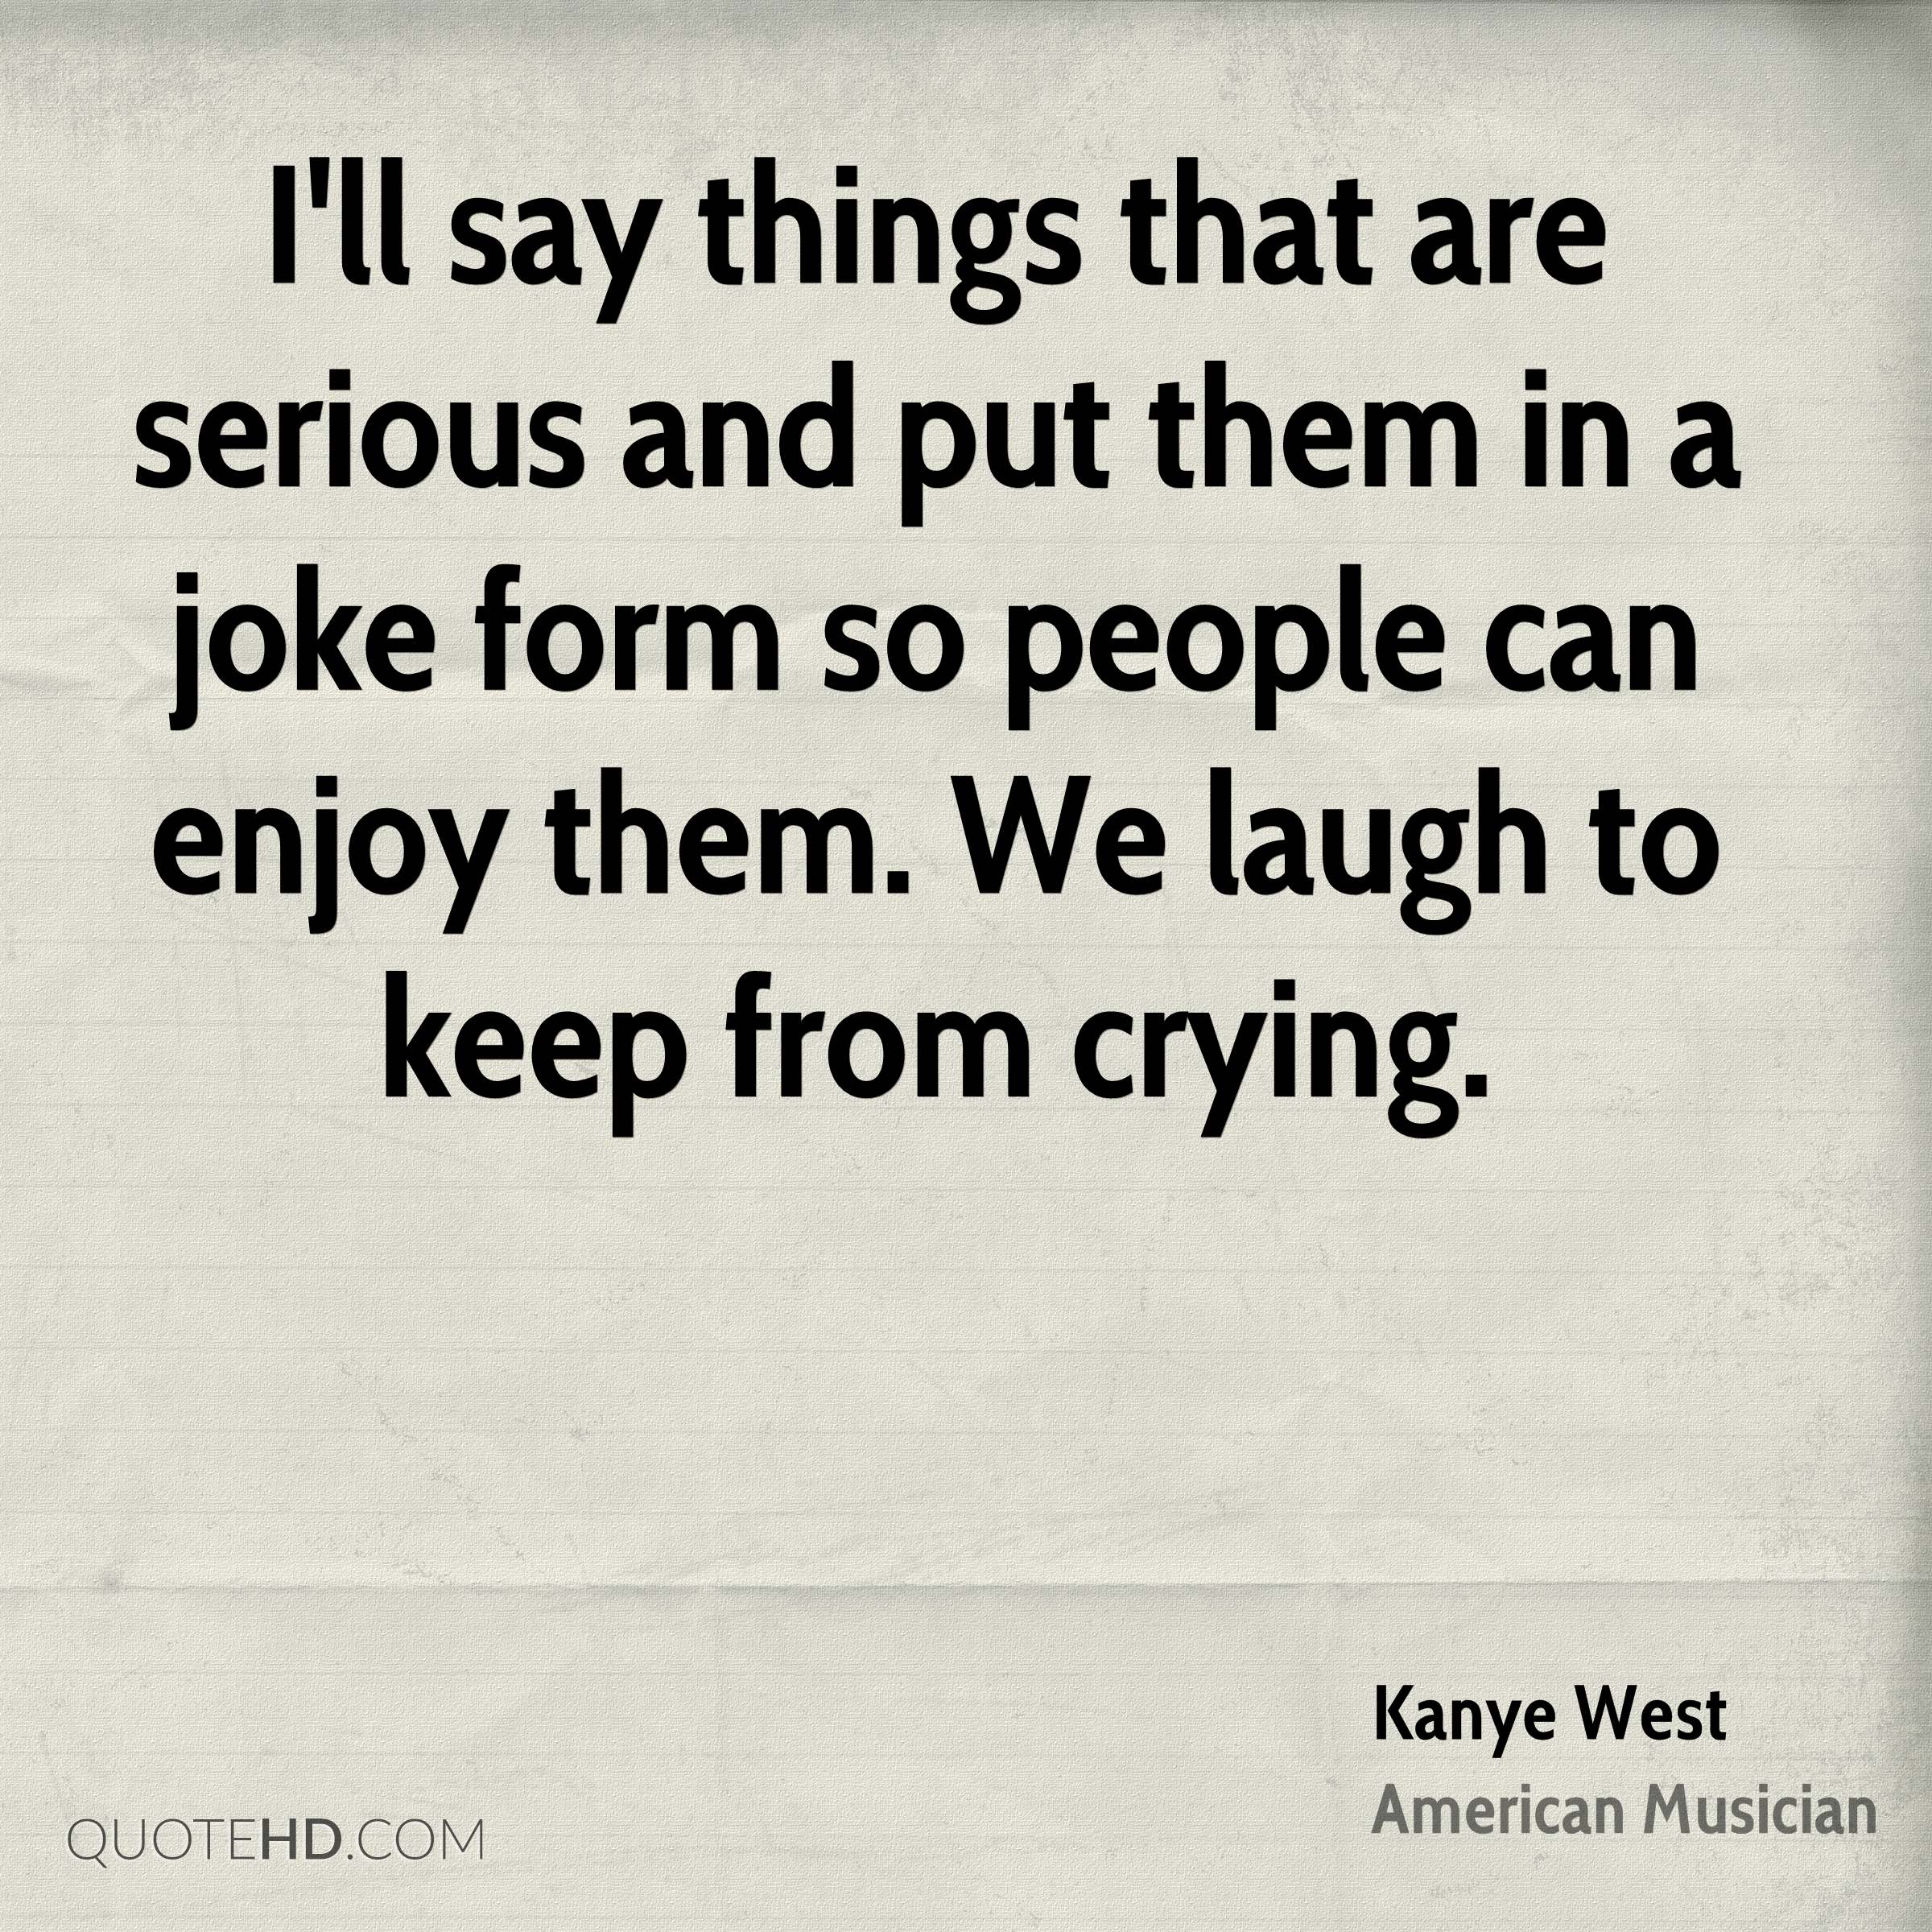 I'll say things that are serious and put them in a joke form so people can enjoy them. We laugh to keep from crying.